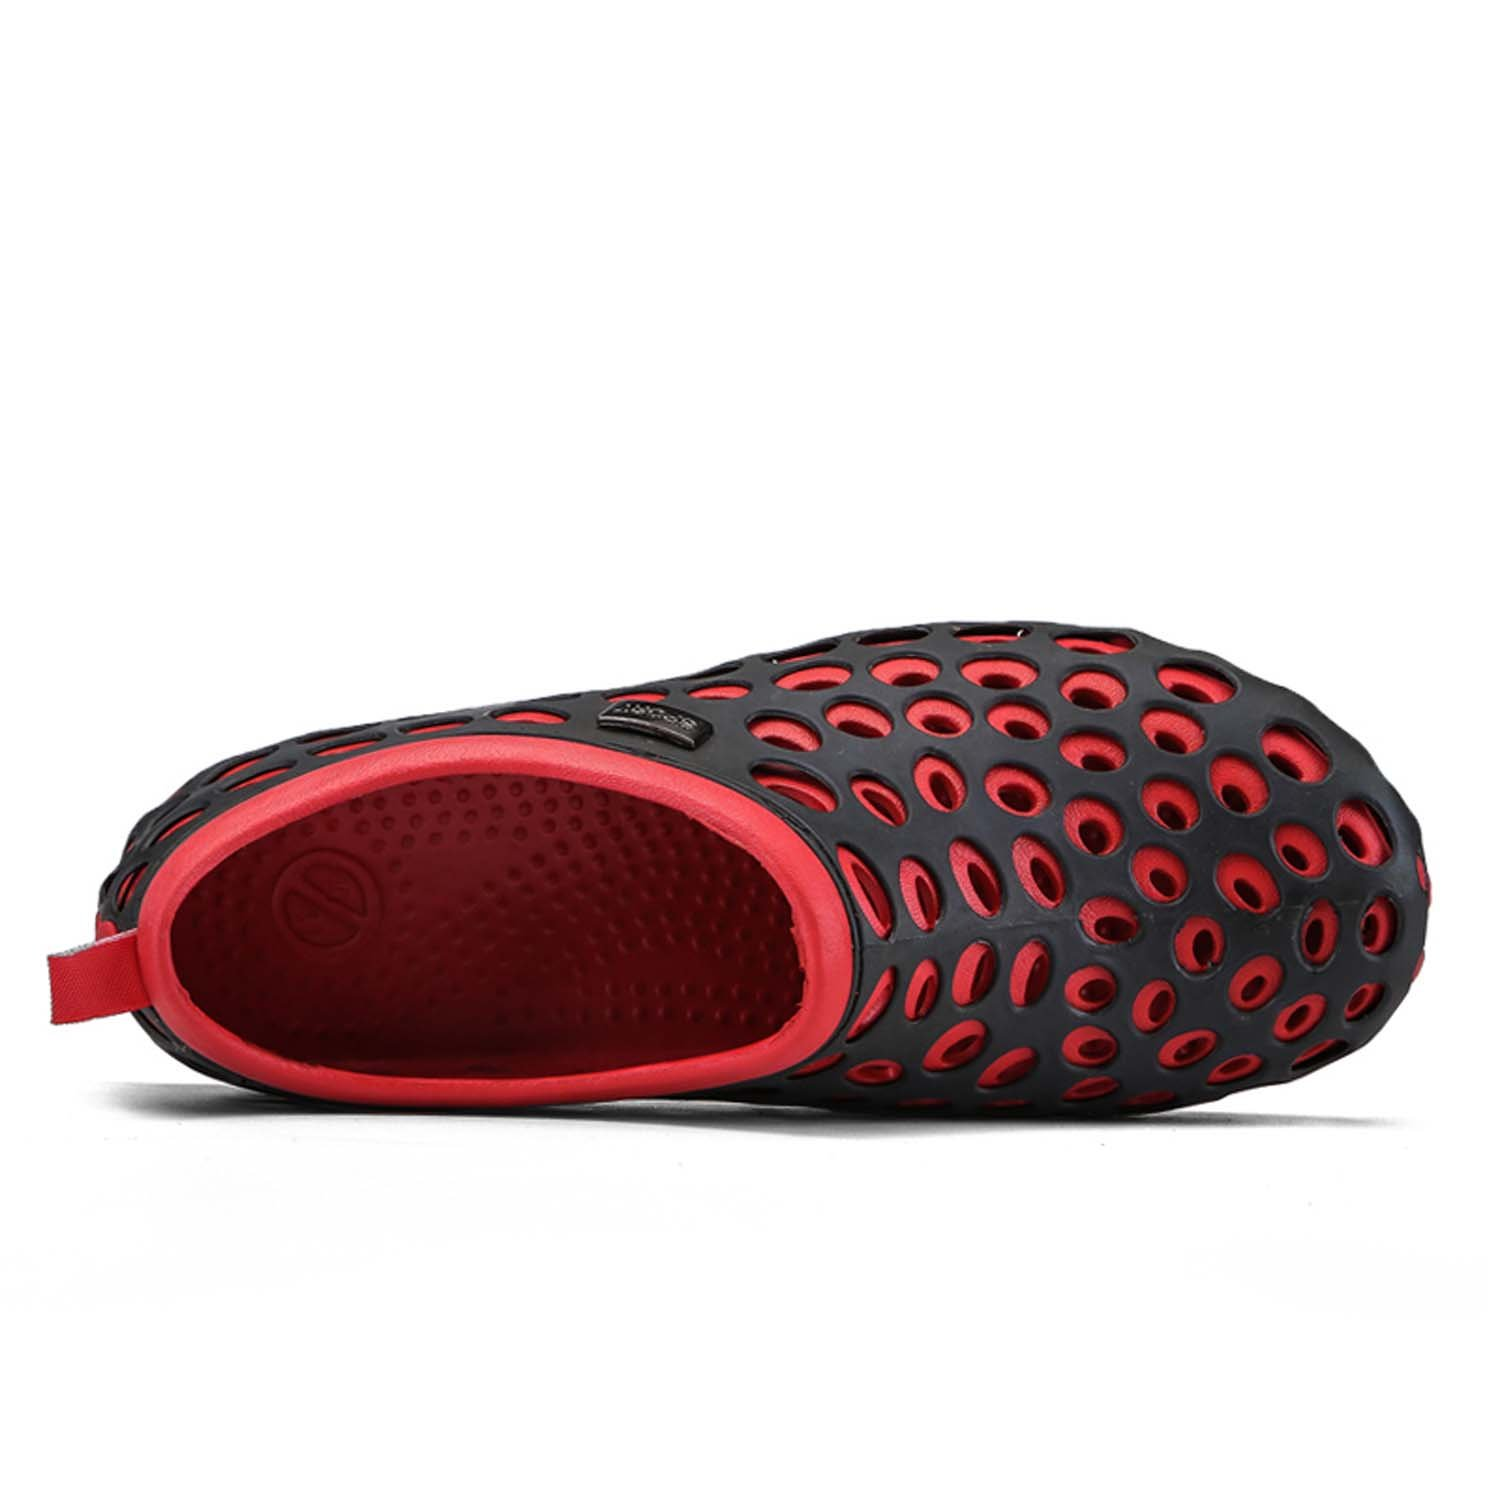 BARKOR Water Shoes Outdoor Beach Shoes Breathable Slide-in Casual Flat-Bottomed Sandals Shoes